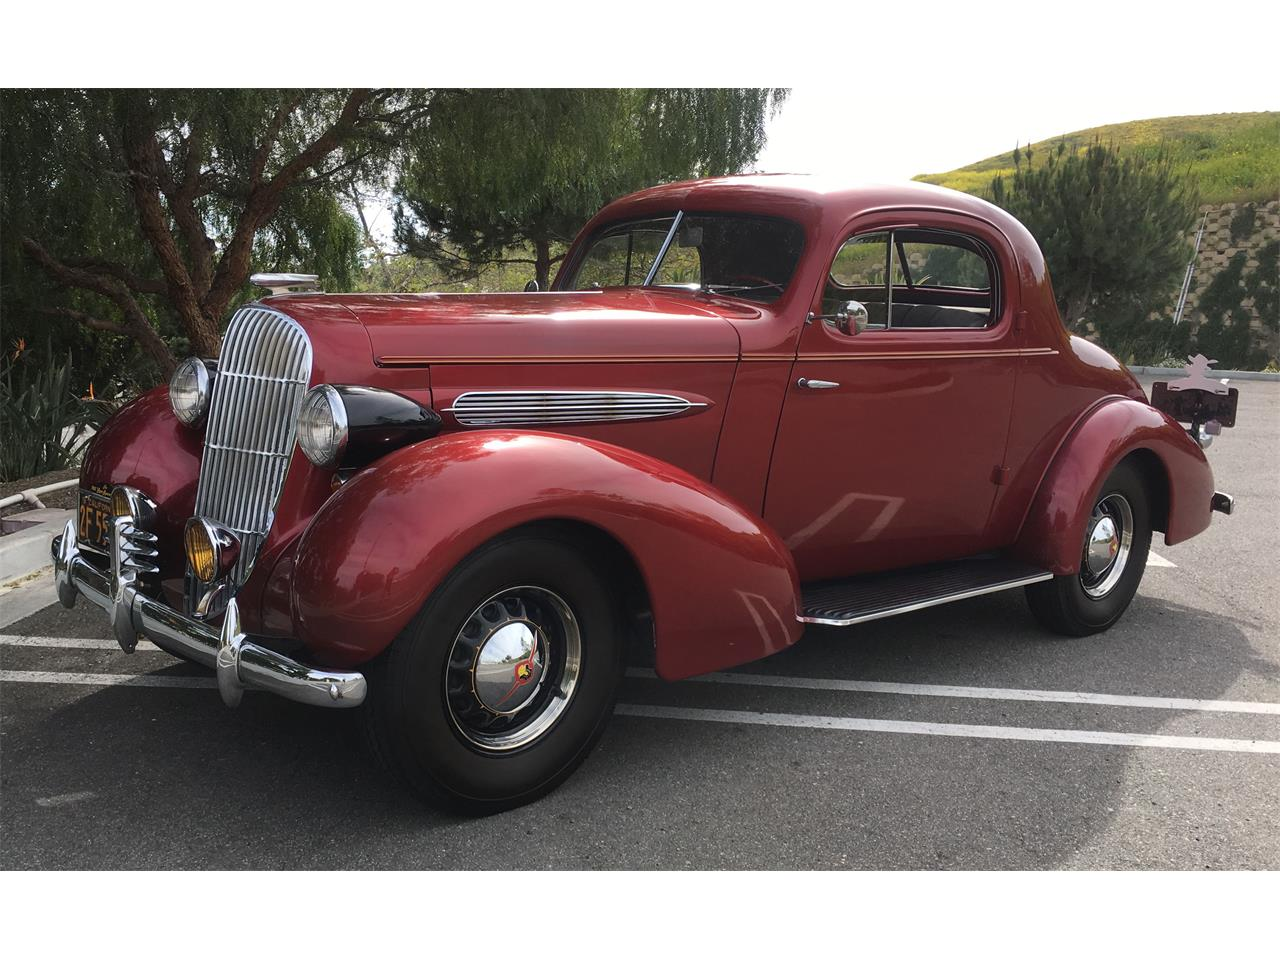 Large Picture of '35 Street Rod located in California - $35,000.00 Offered by a Private Seller - PW3Y